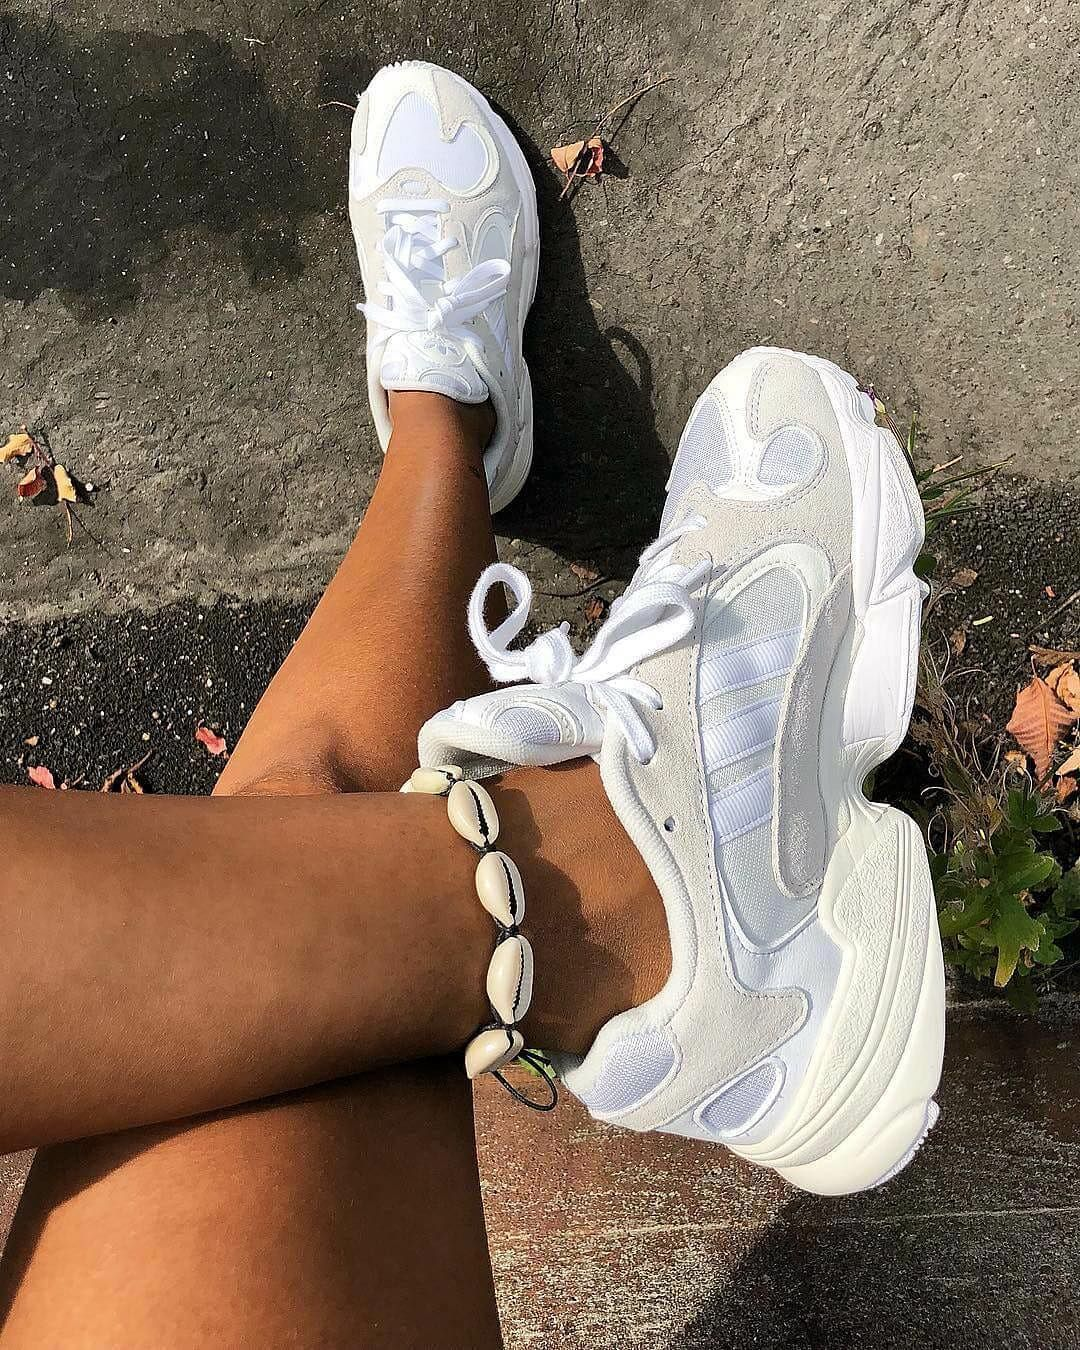 27 most popular sneakers on Instagram — styles from Adidas